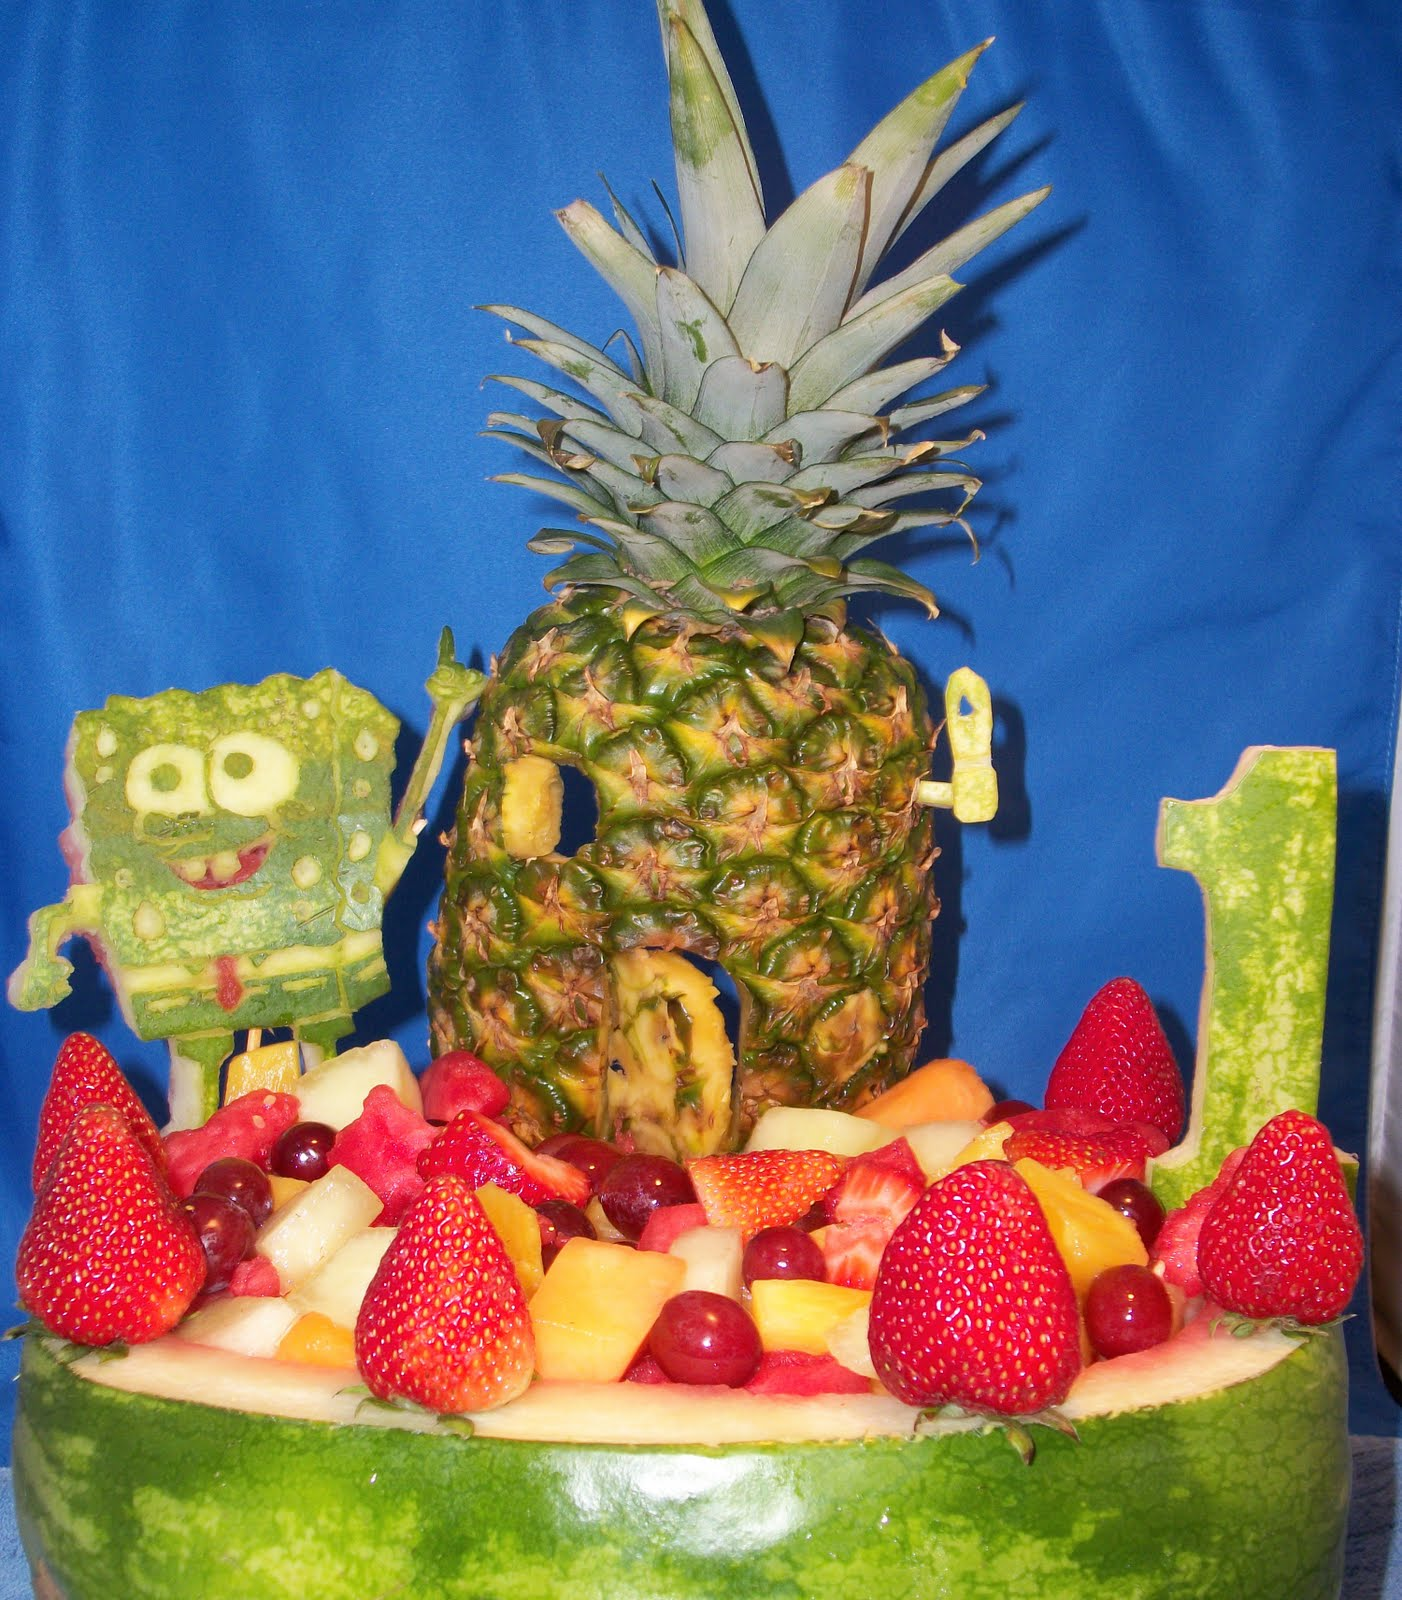 Cool fruit carvings